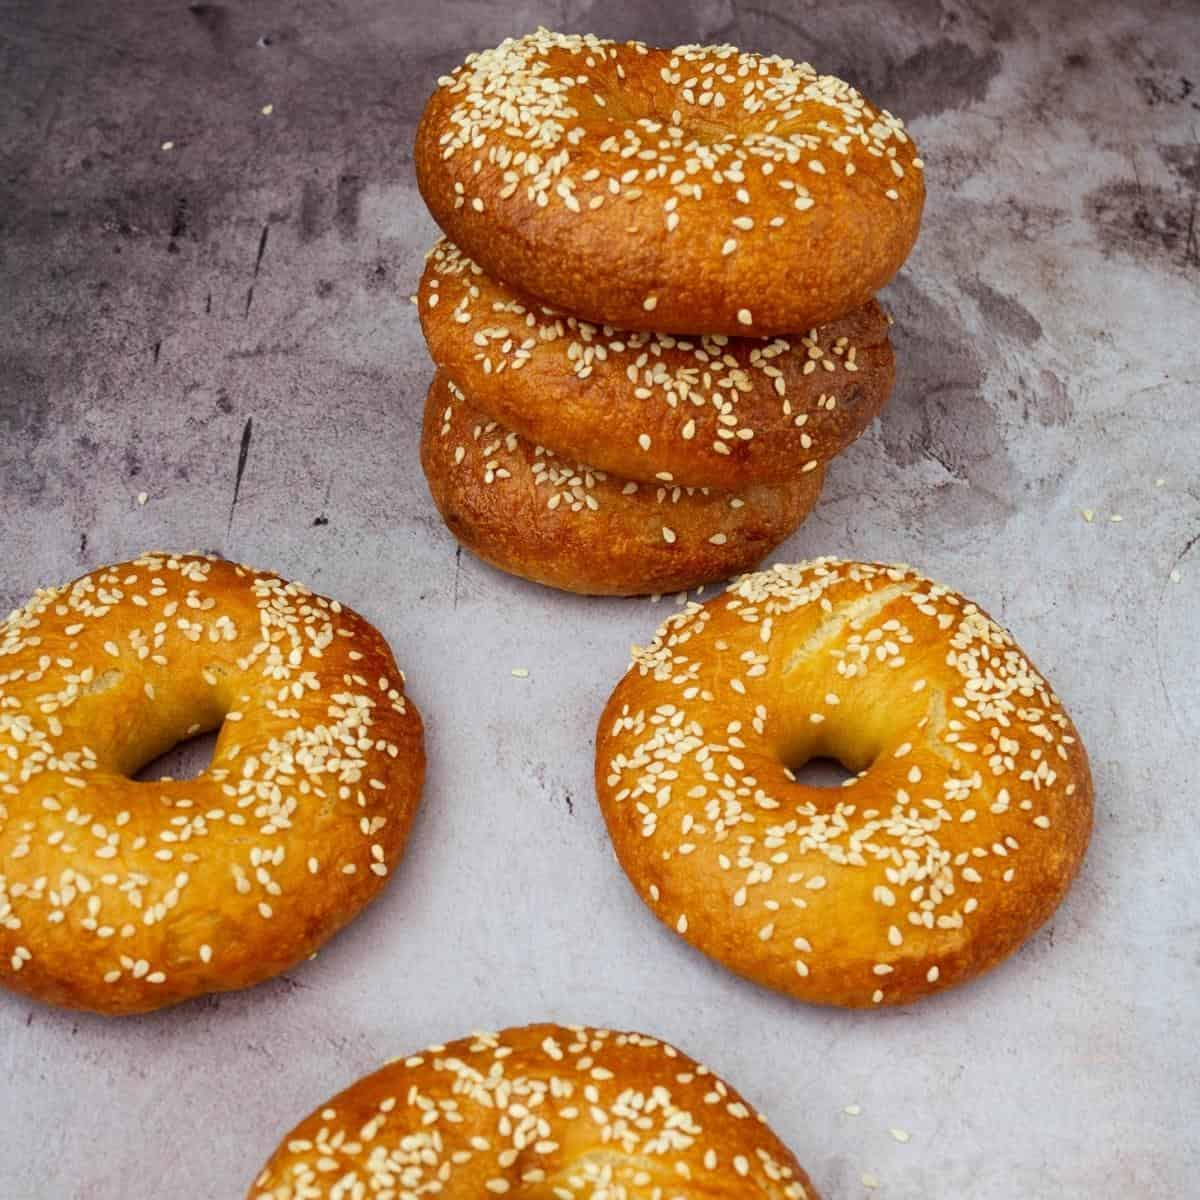 Bagels on a table topped with sesame seeds.